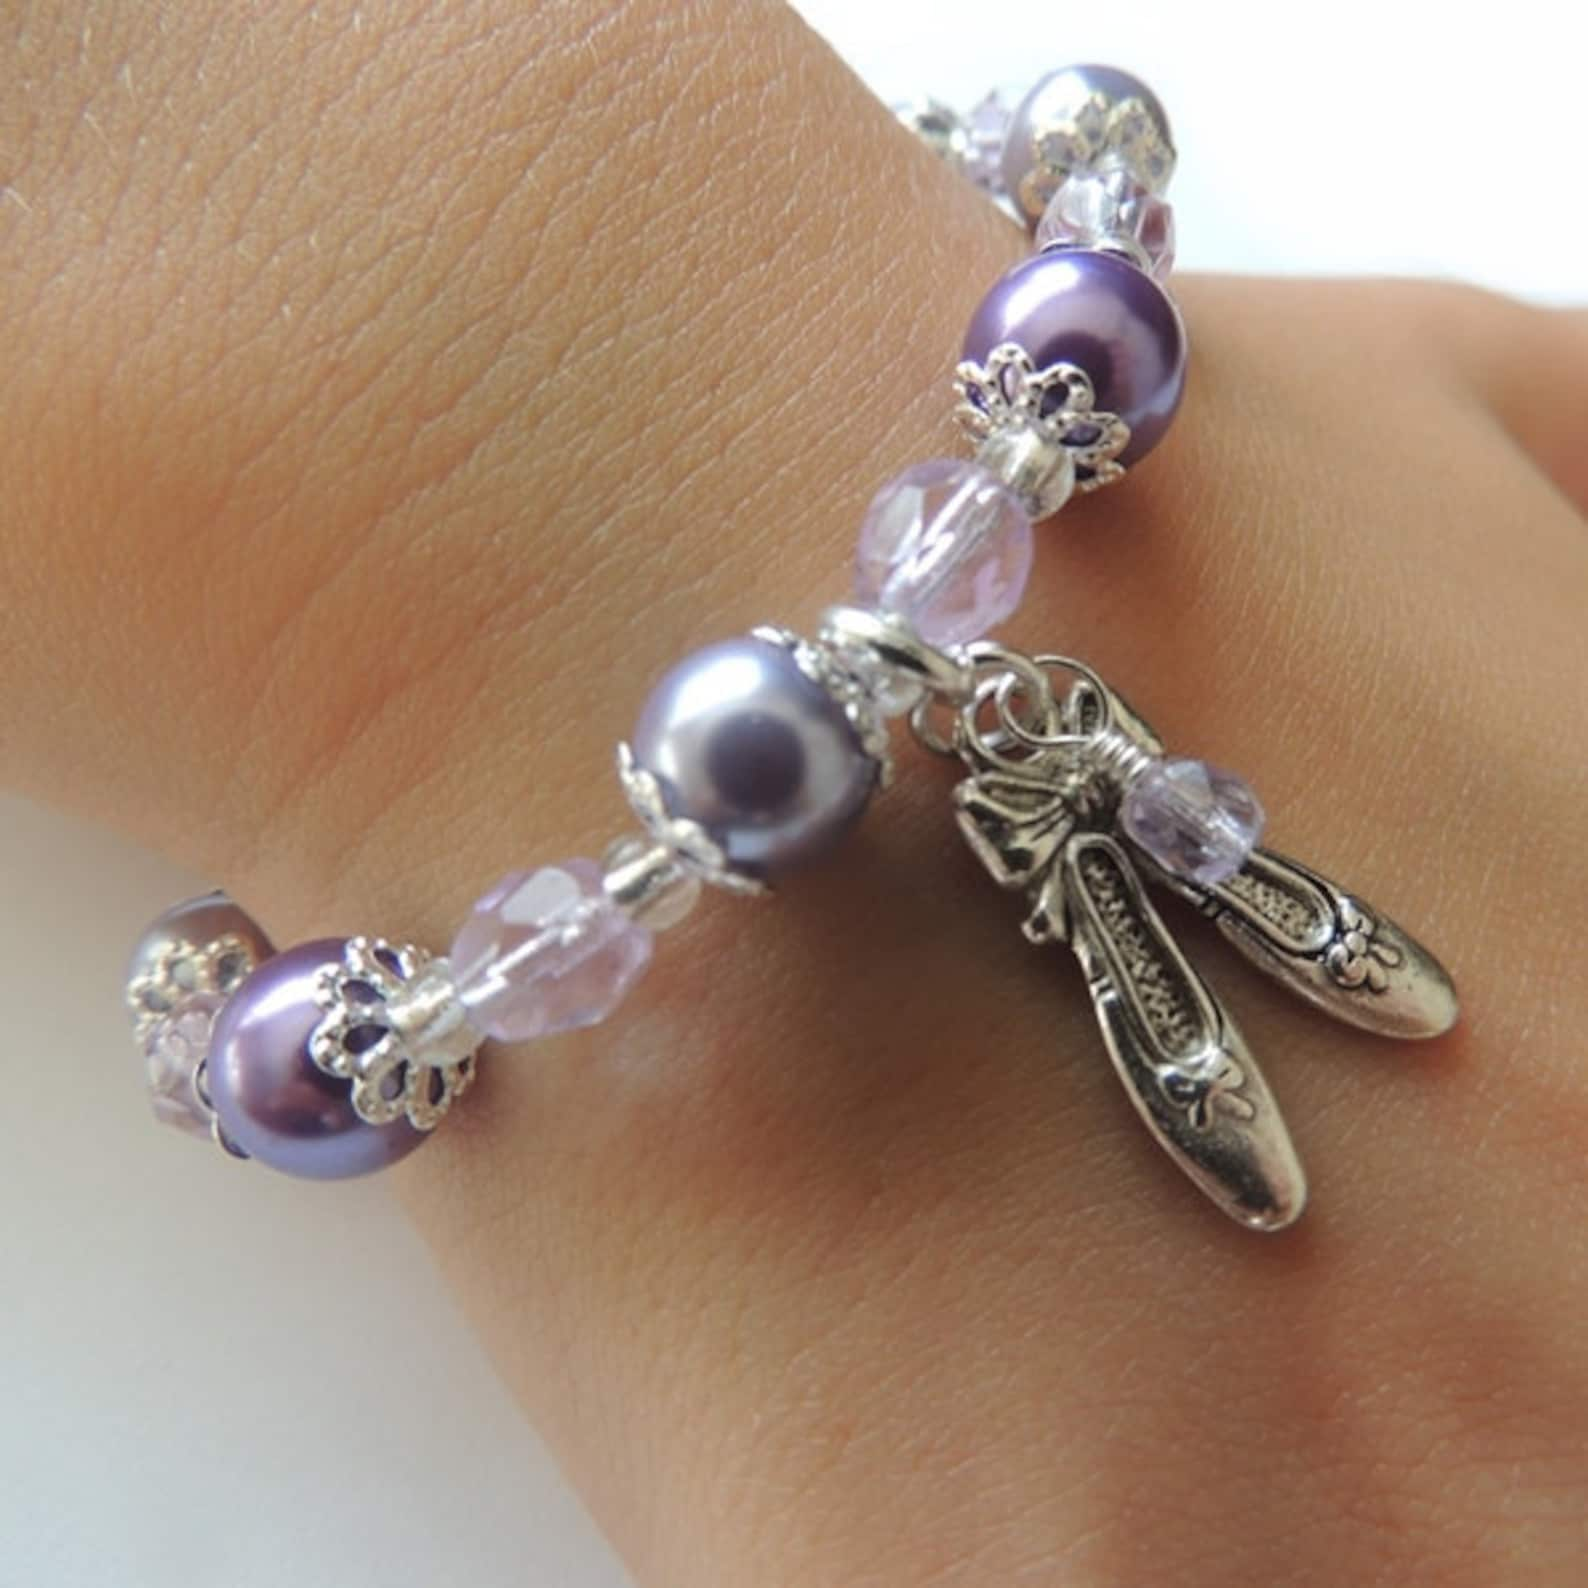 purple girls ballet shoes bracelet | bridesmaid bracelet| flower girl bracelet | ballet charm bracelet |gifts for girls | girls